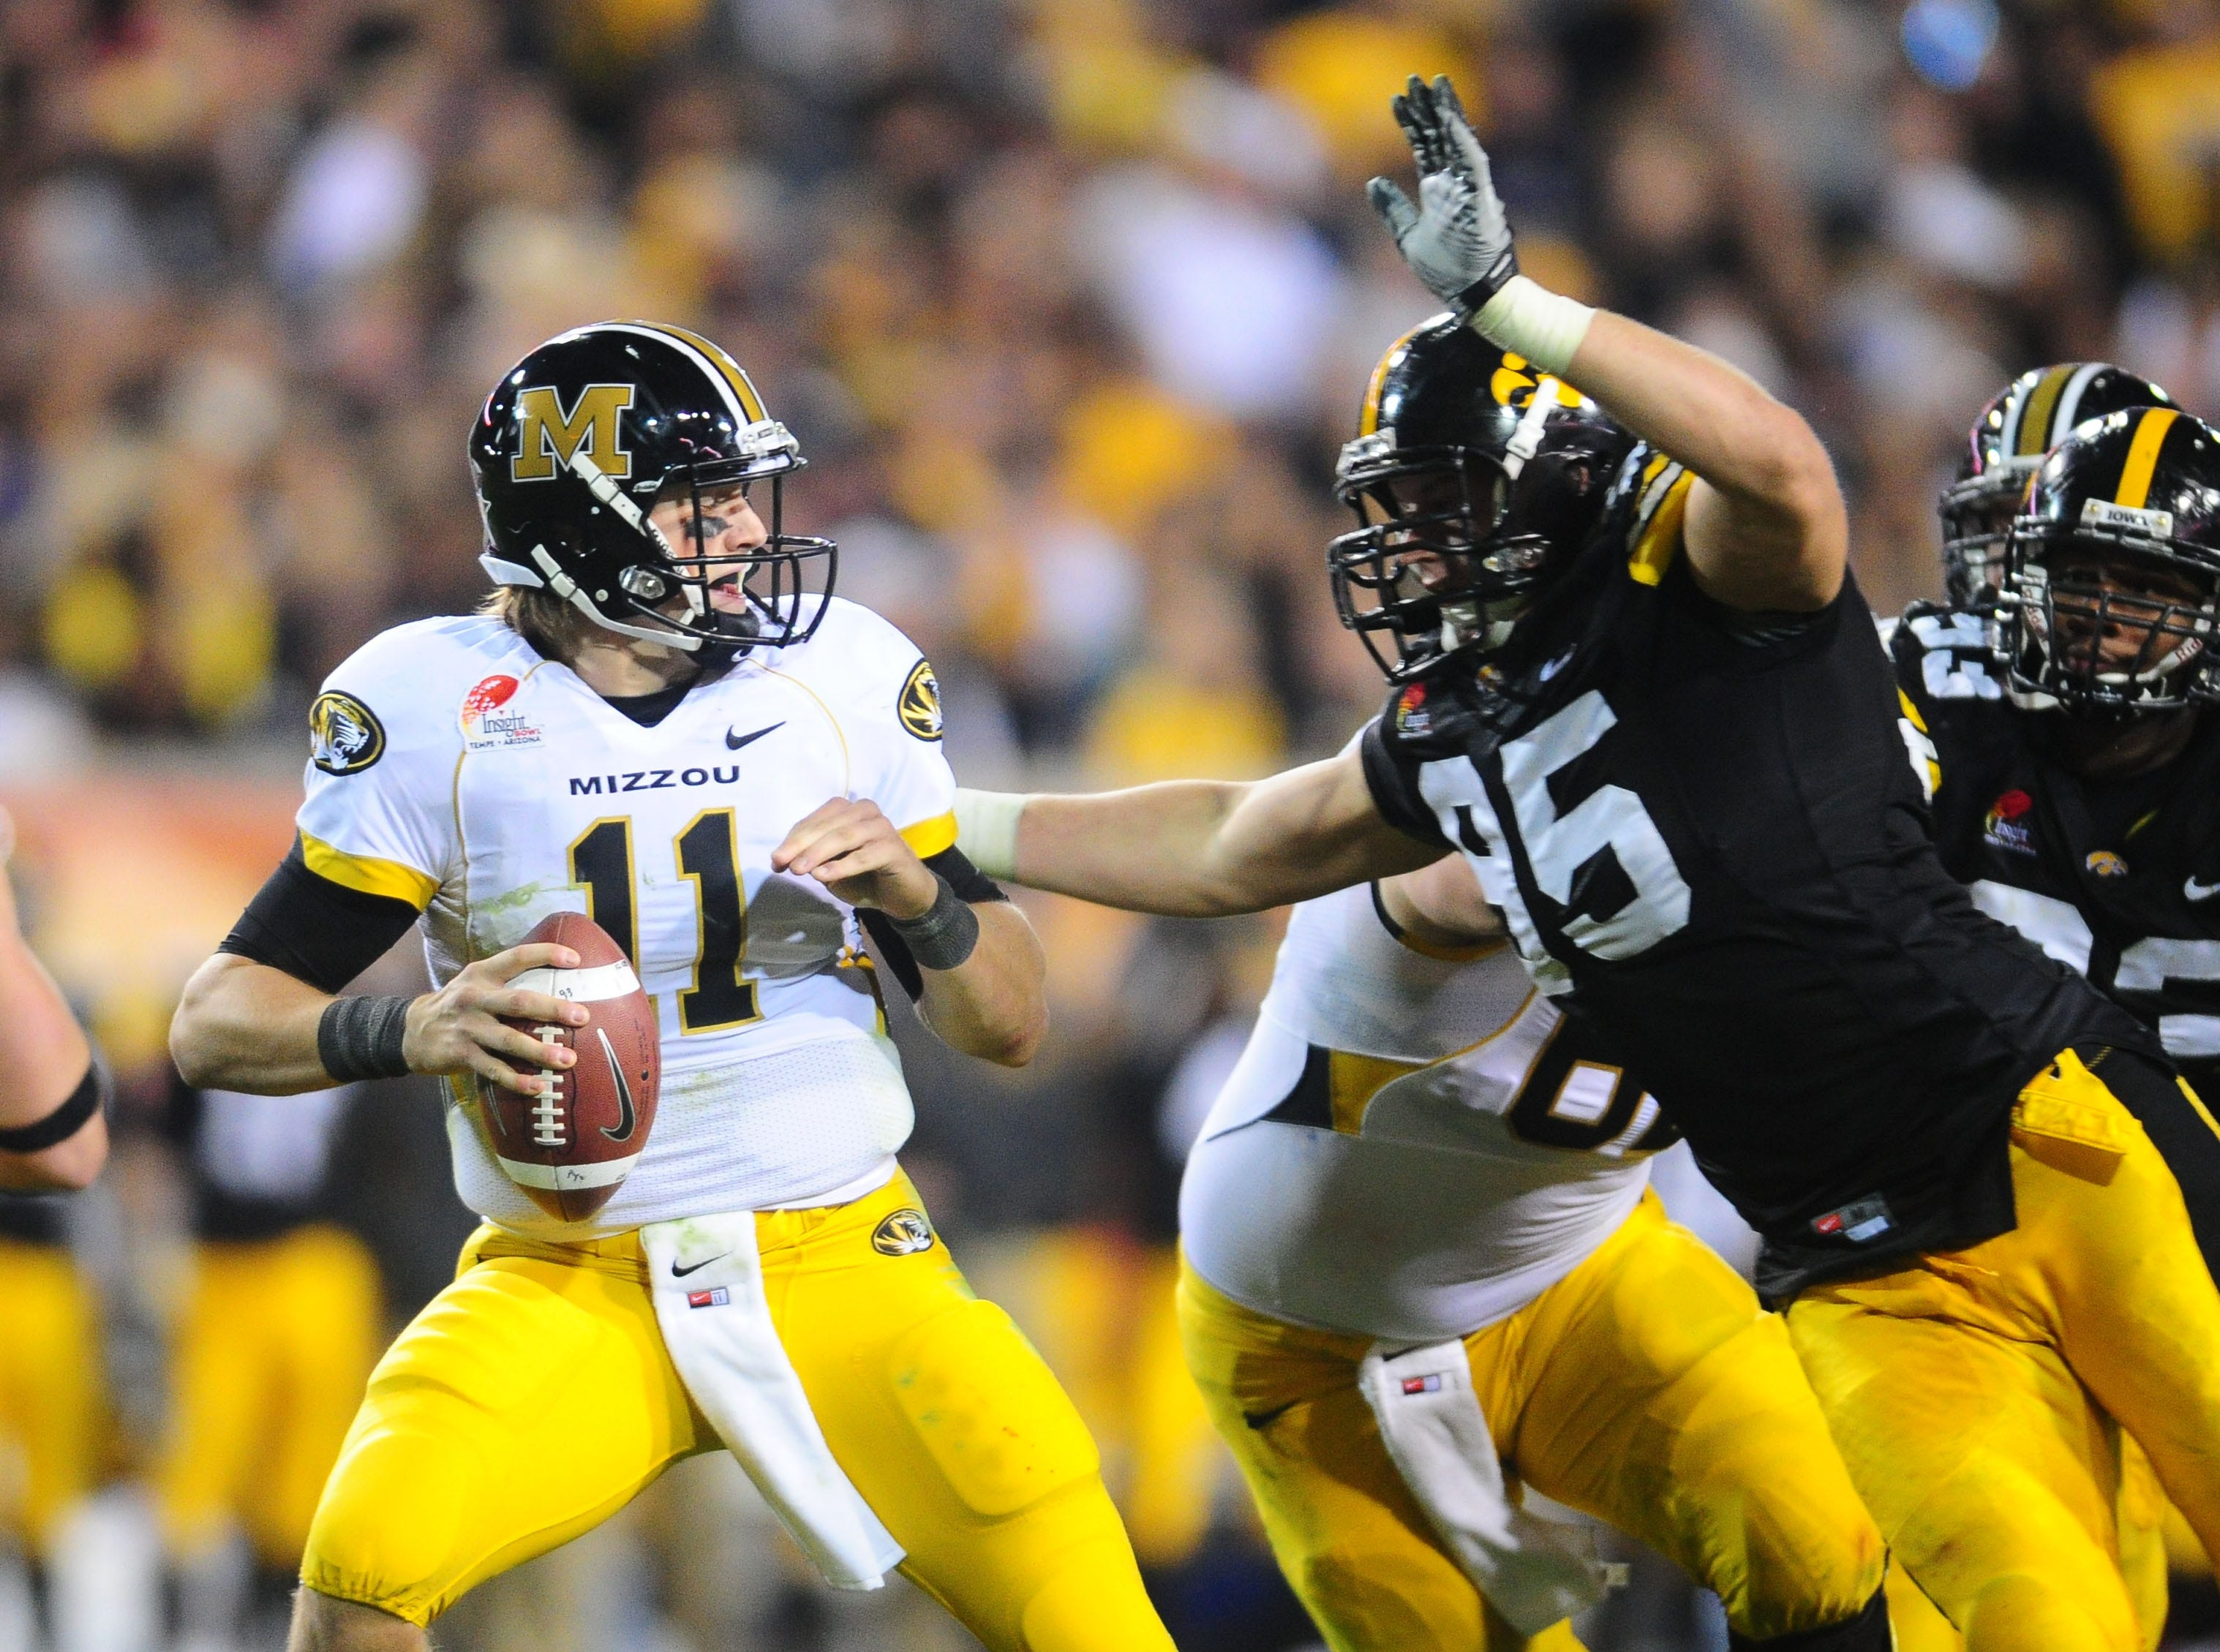 Dec. 28, 2010; Tempe, AZ, USA; Missouri Tigers quarterback (11) Blaine Gabbert is sacked by Iowa Hawkeyes defensive lineman (95) Karl Klug in the second quarter in the 2010 Insight Bowl at Sun Devil Stadium. Mandatory Credit: Mark J. Rebilas-USA TODAY Sports